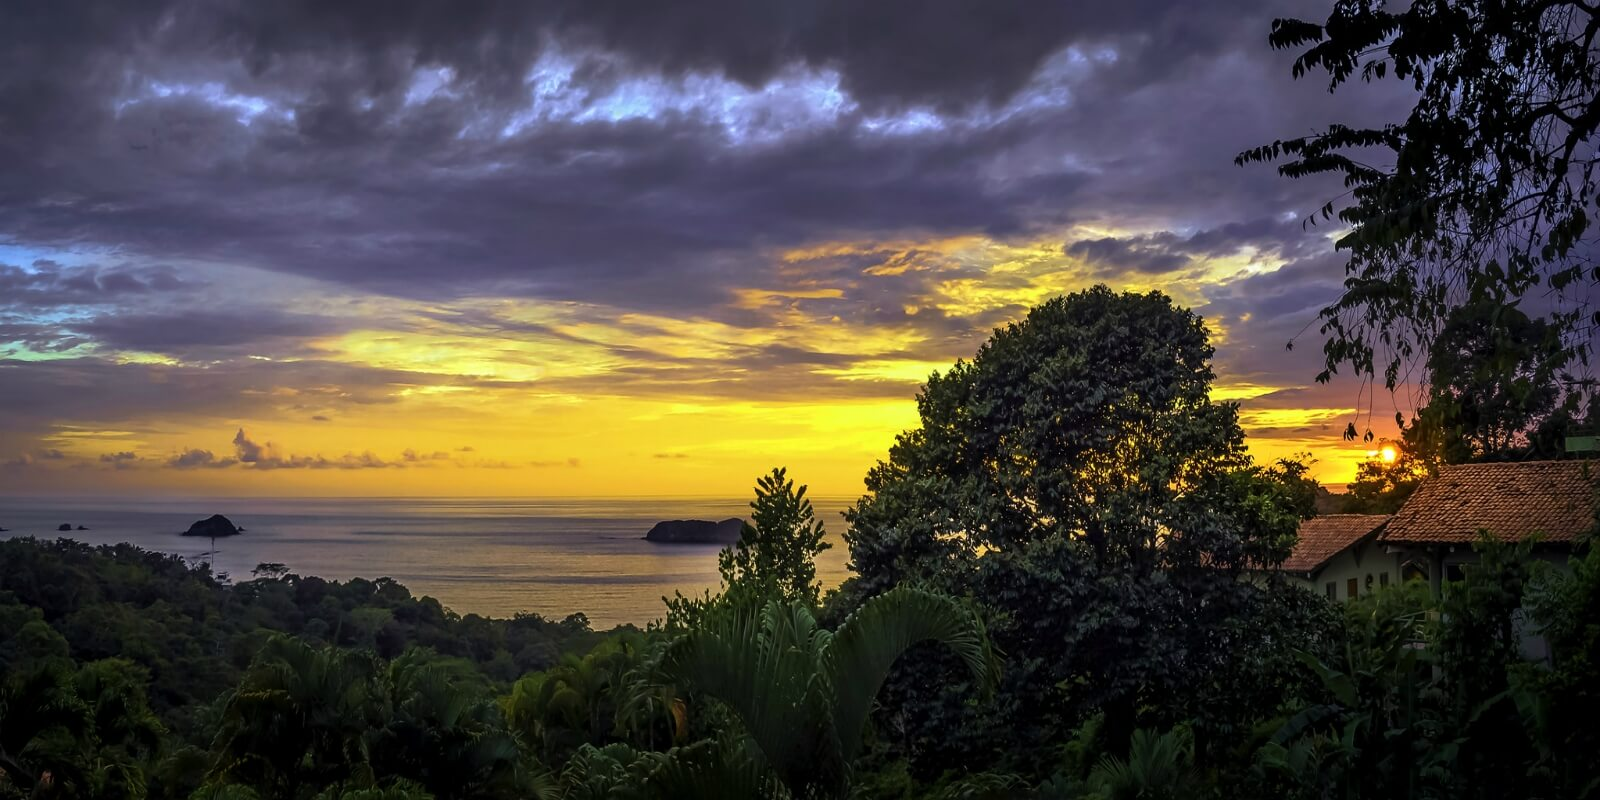 Stunning sunset in Costa Rica